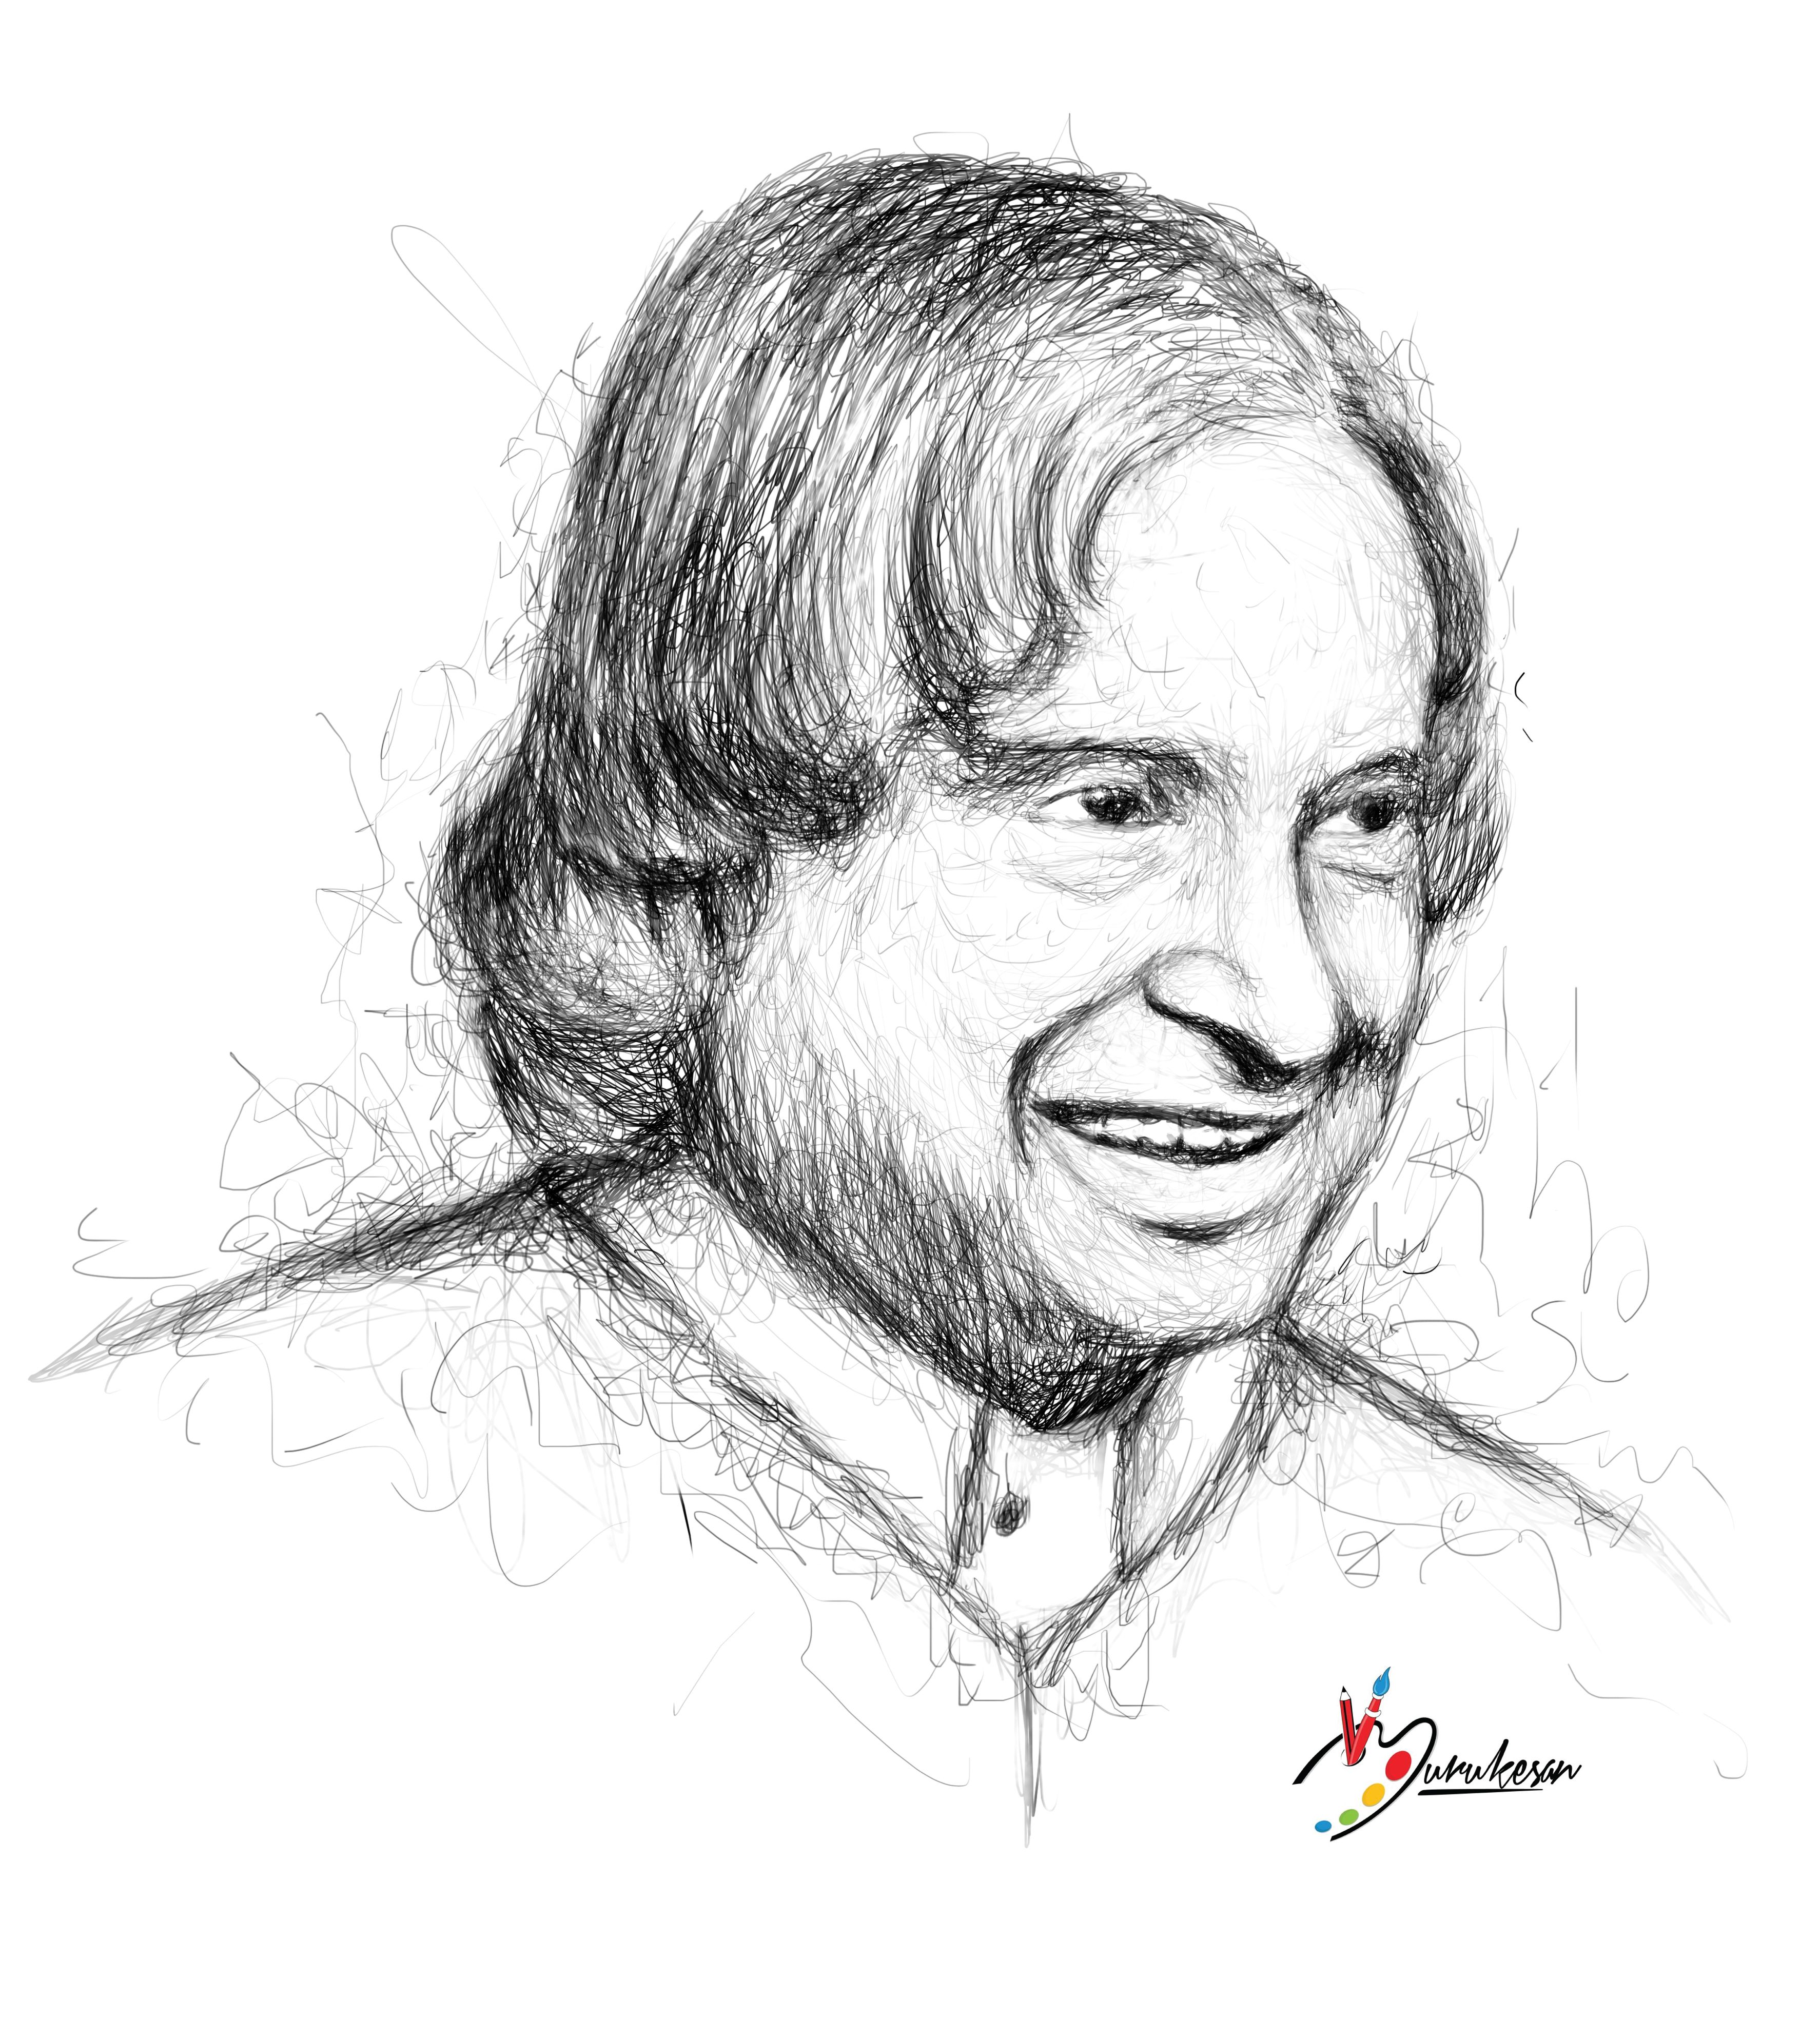 Pencil · ideas for drawing · dream hero abdul kalam sir abdul kalam hand sketch drawing sketches